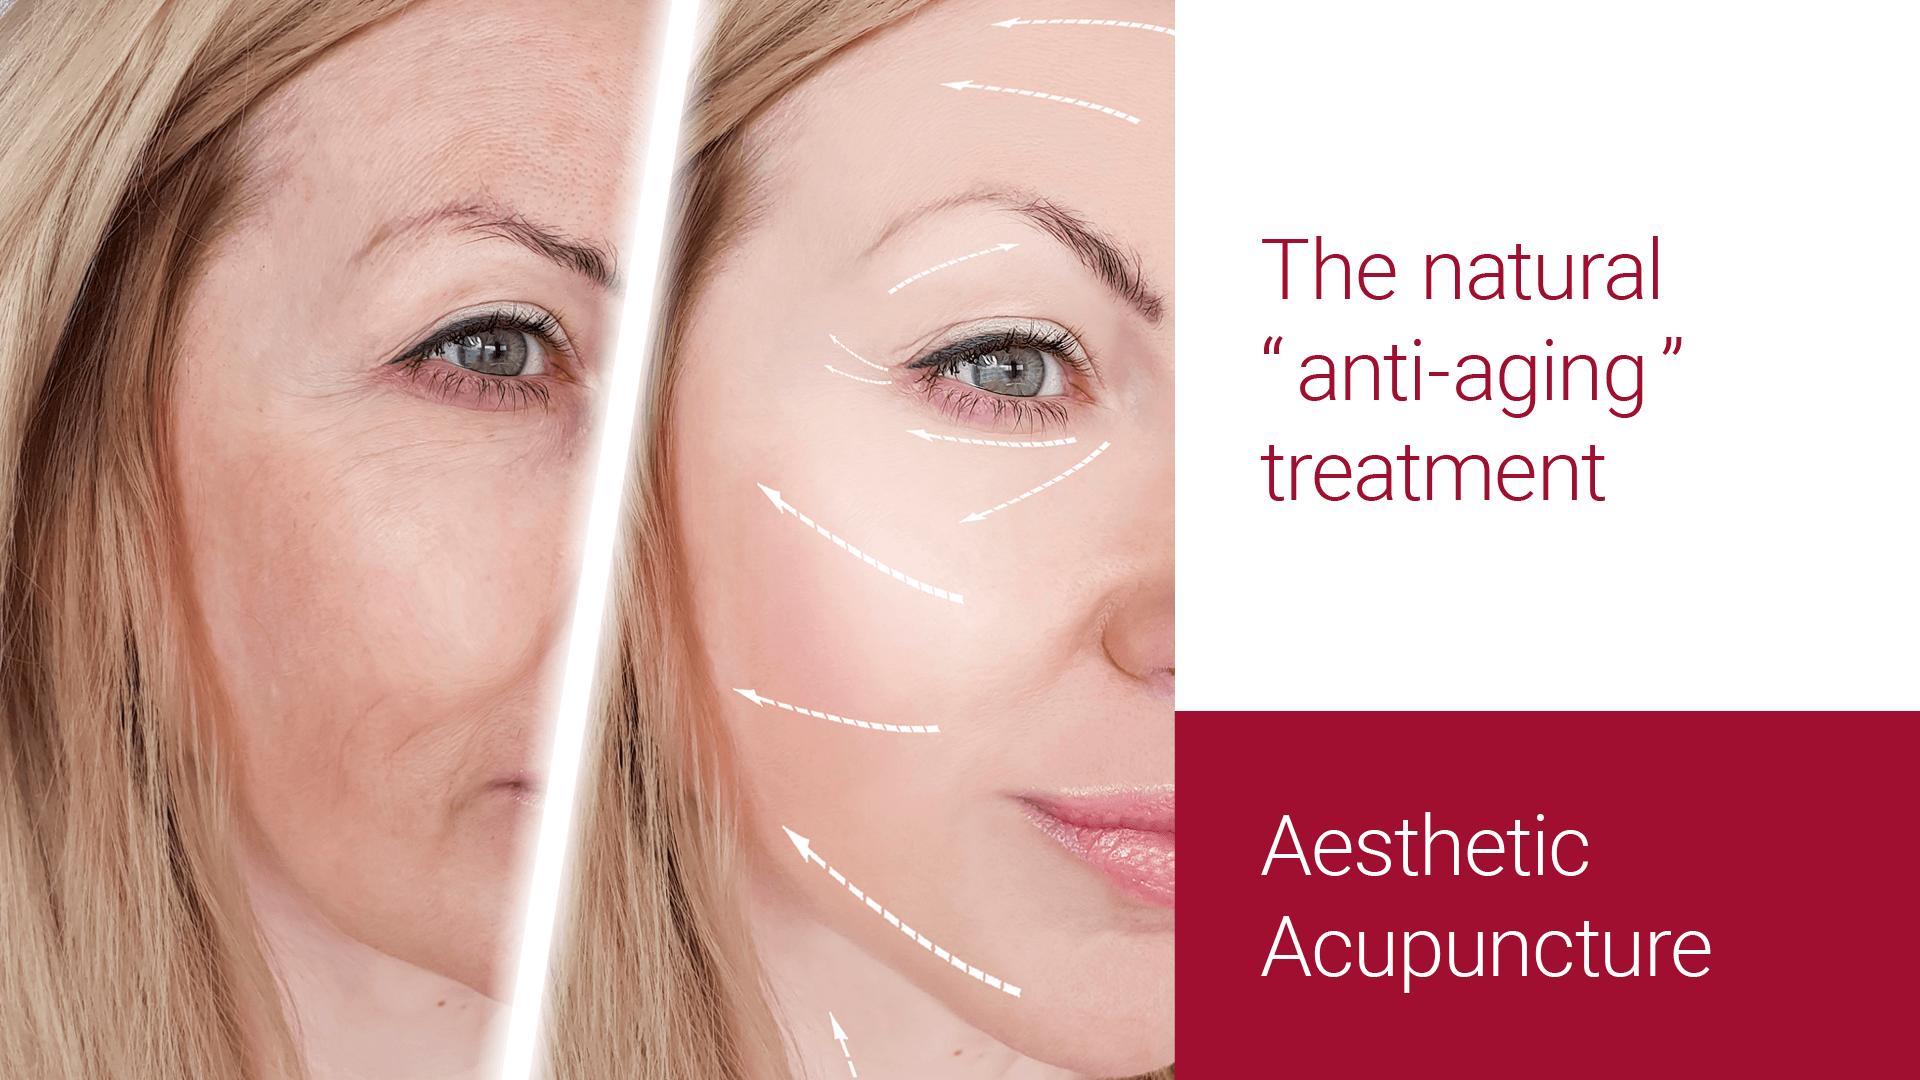 Aesthetic Acupuncture A Natural Anti Aging Treatment